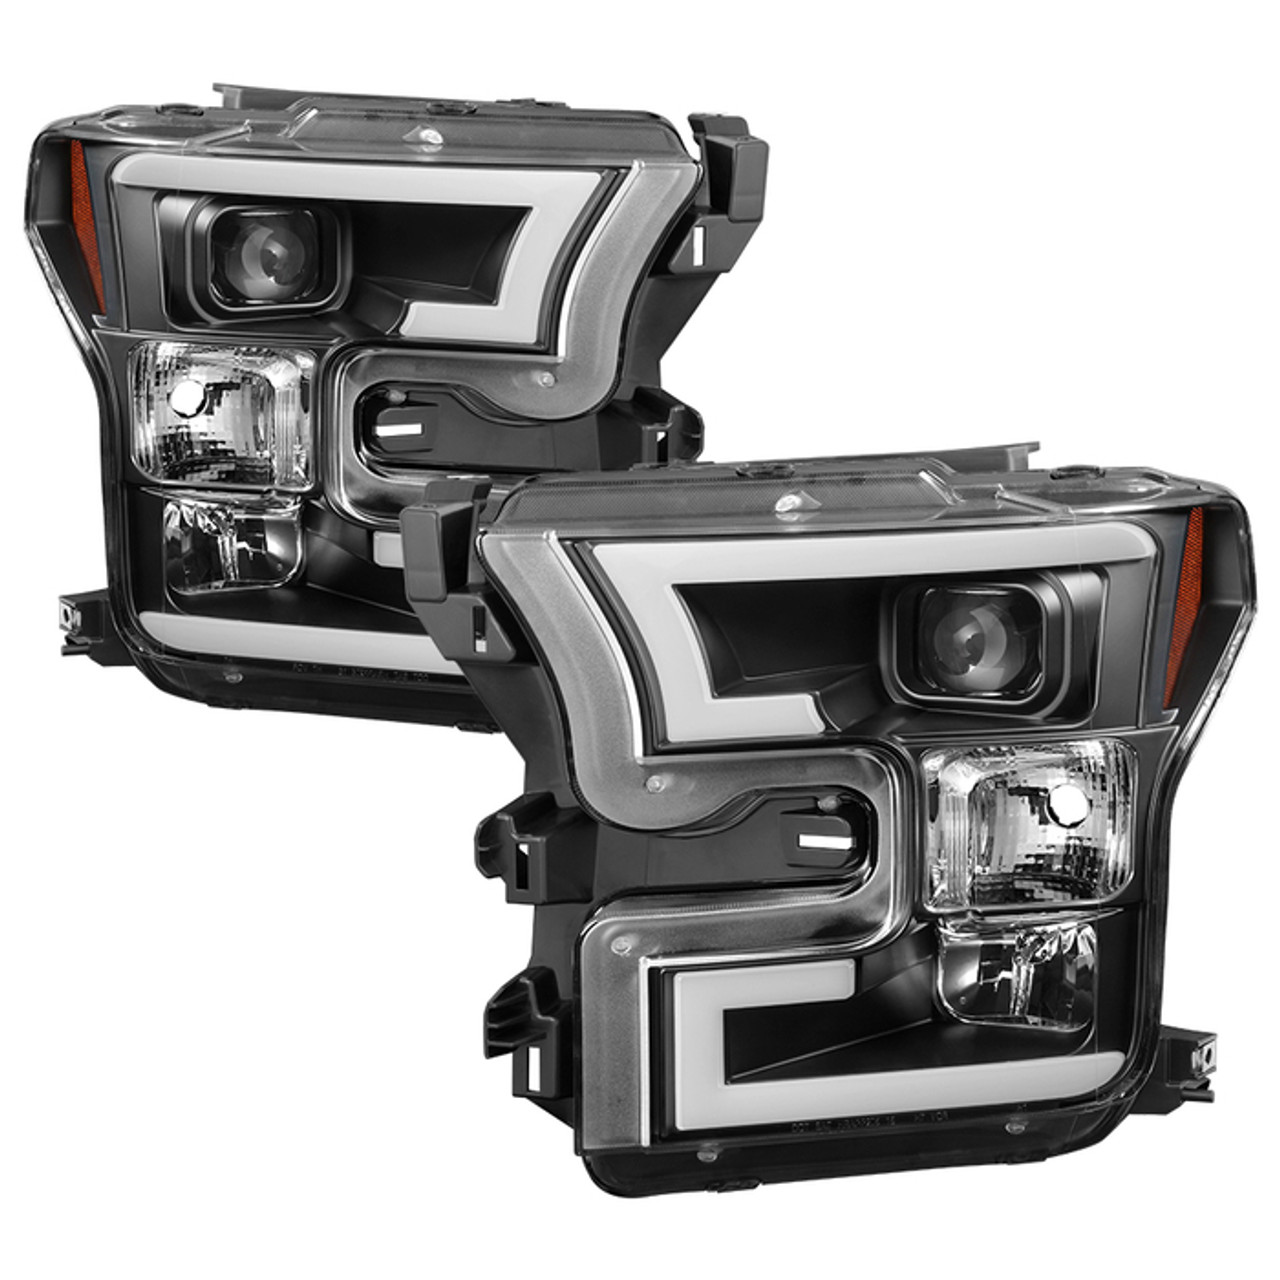 Spyder 2015-2017 Ford F-150 LED Light Bar Projector Headlights (Black)